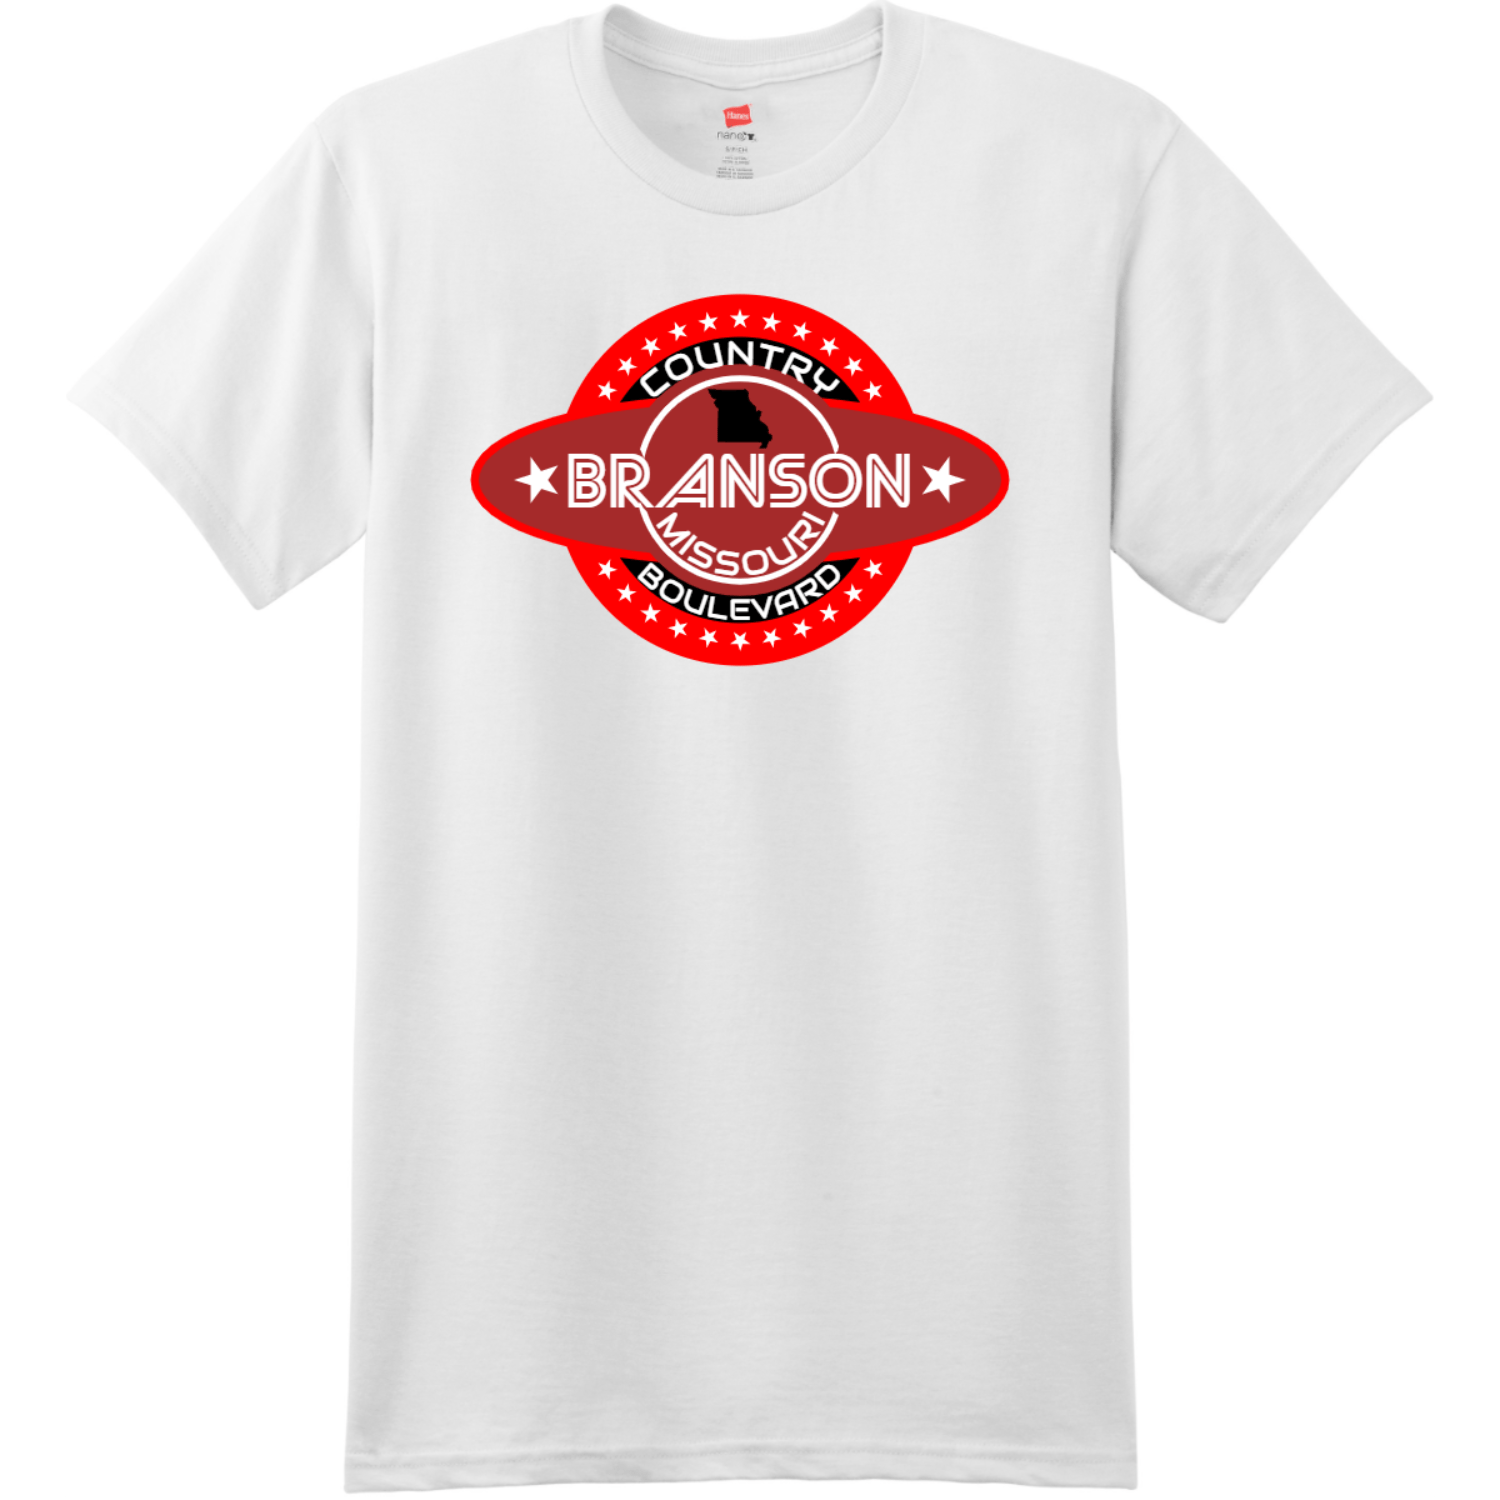 Branson Missouri Country Boulevard T Shirt White Hanes Nano 4980 Ringspun Cotton T Shirt